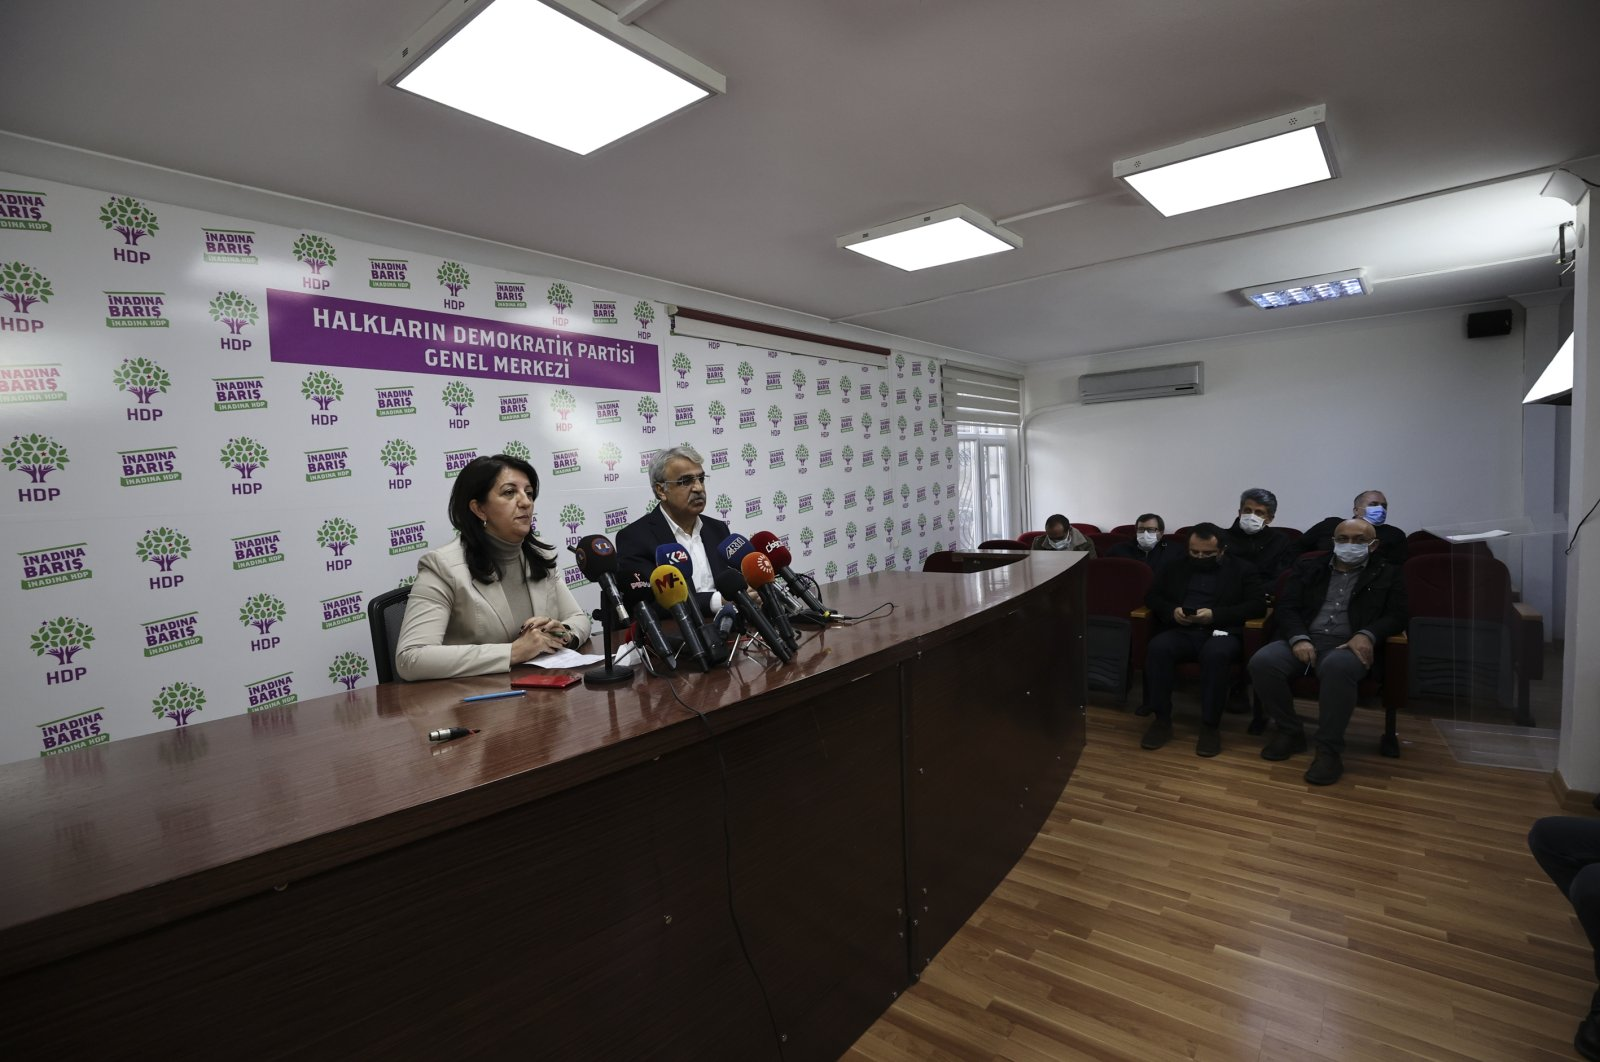 HDP Co-Chairpersons Pervin Buldan and Mithat Sancar hold a news conference at the HDP headquarters in Ankara on March 18, 2021 (AA Photo)